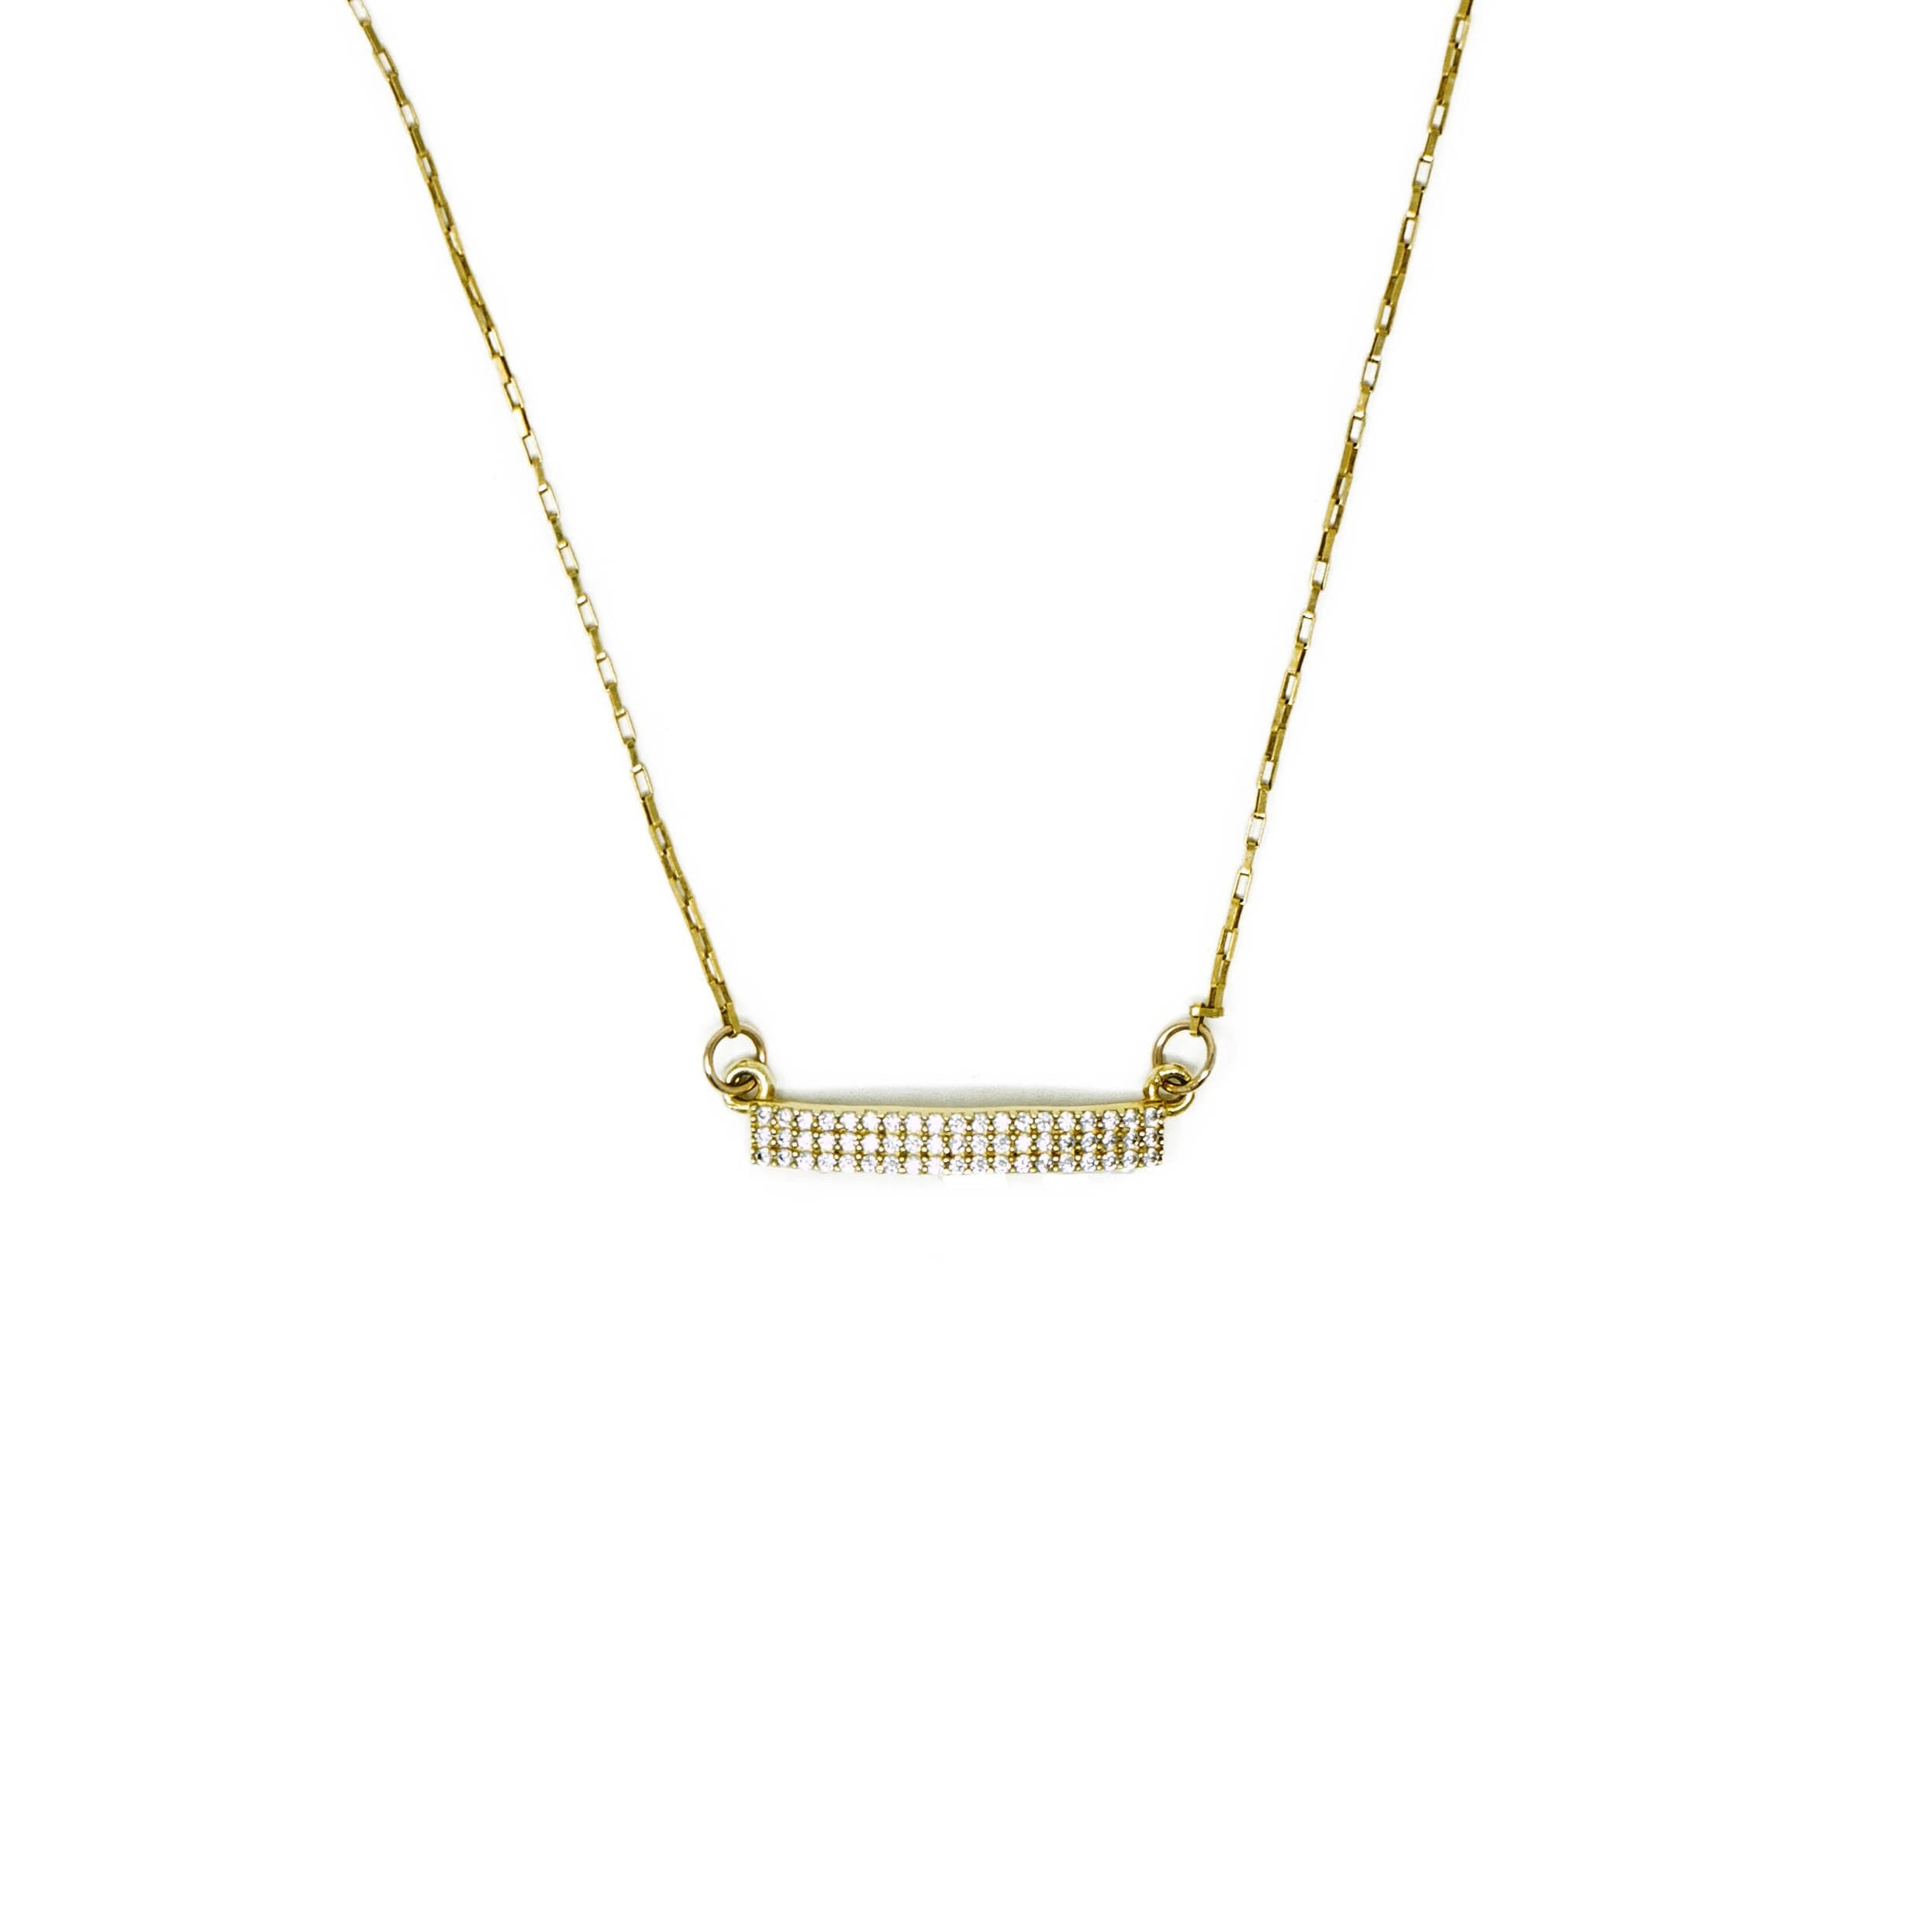 Art Deco Bar Necklace